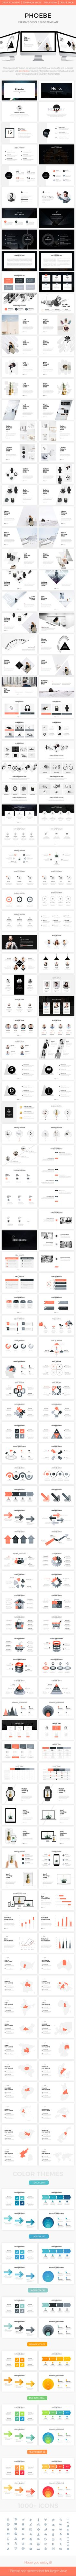 Phoebe - Creative Powerpoint Template - 200+ Well Designed Slides